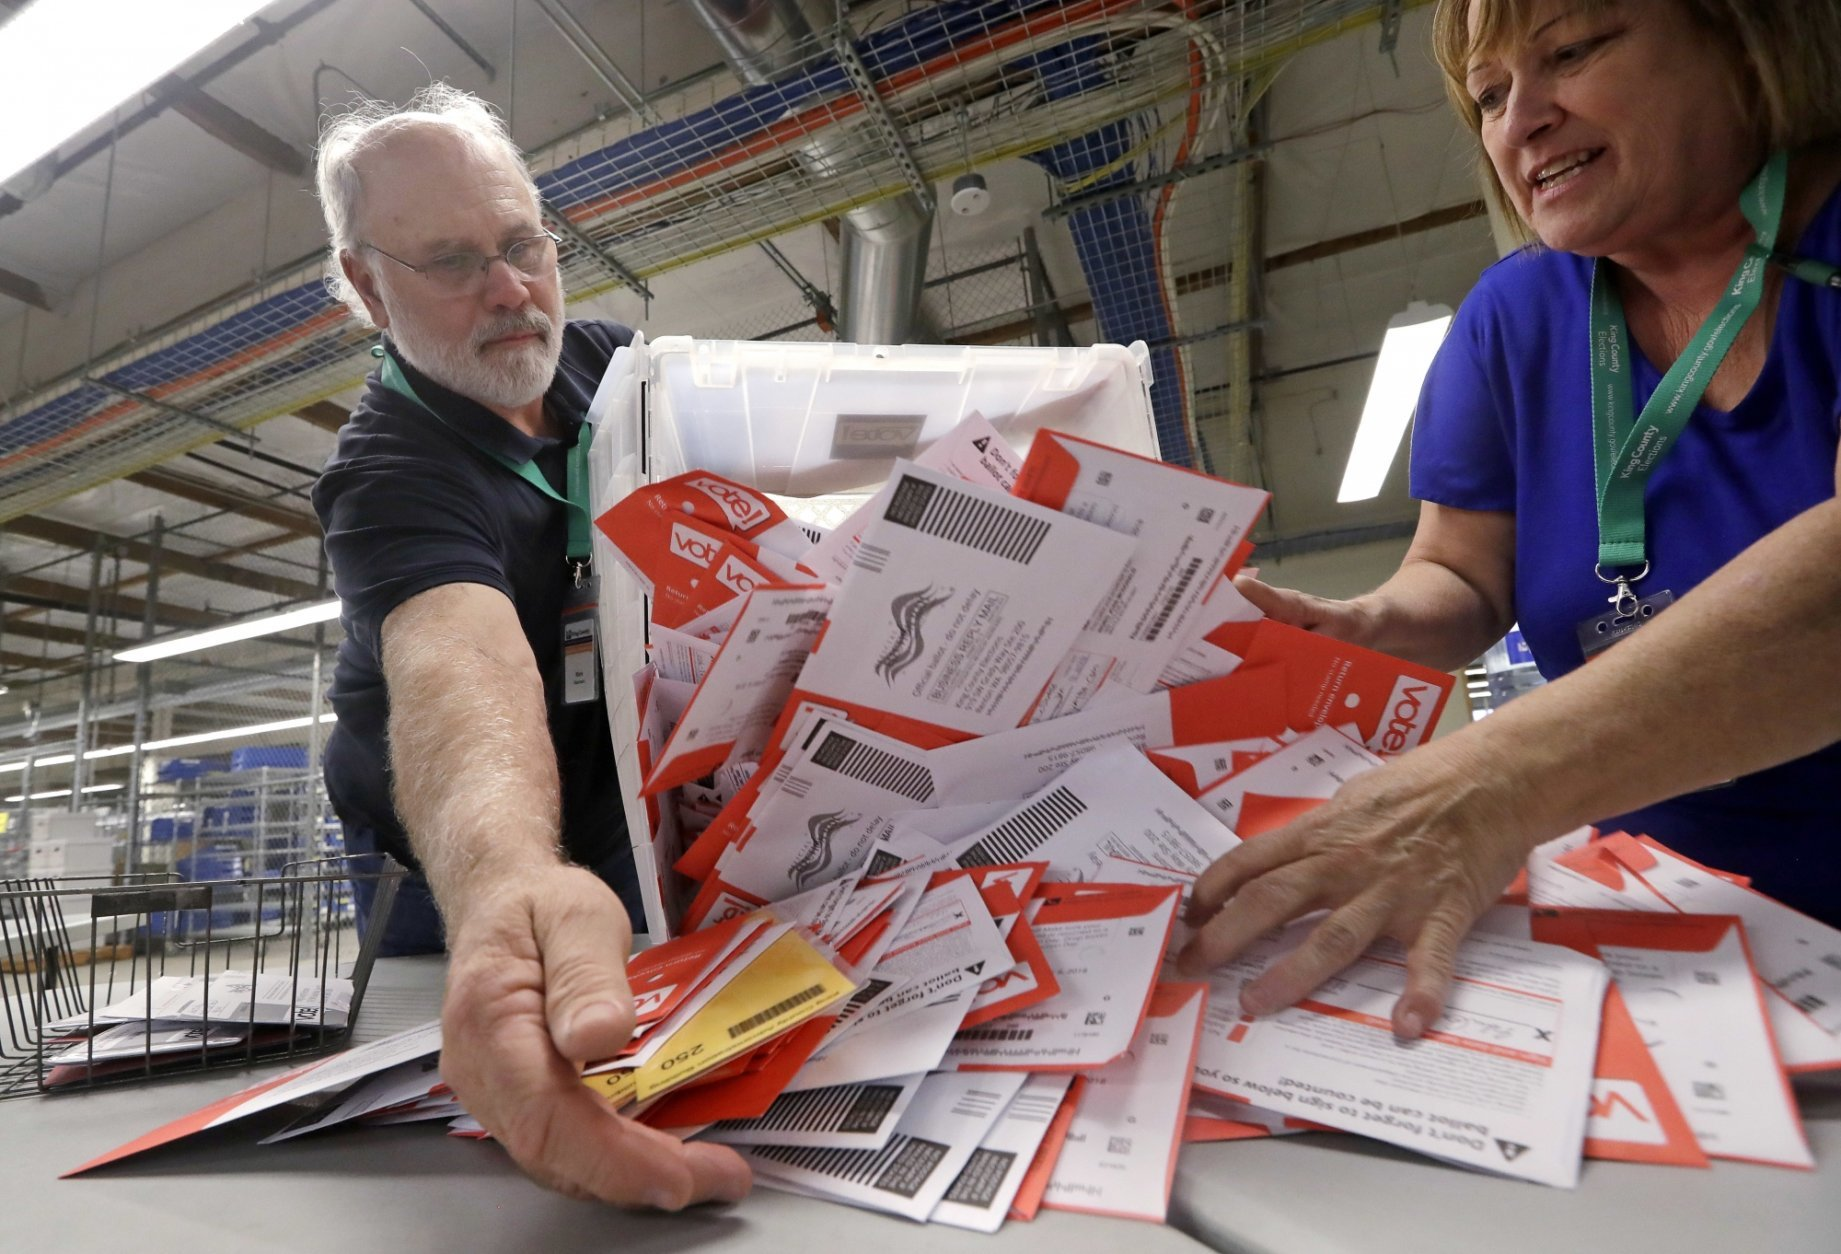 Election workers Mark Bezanson, left, and Julie Olson dump ballots collected earlier in the day from drop boxes onto a table for sorting at the King County Elections office, Monday, Nov. 5, 2018, in Renton, Wash. Voters in Washington all vote only by mail. (AP Photo/Elaine Thompson)